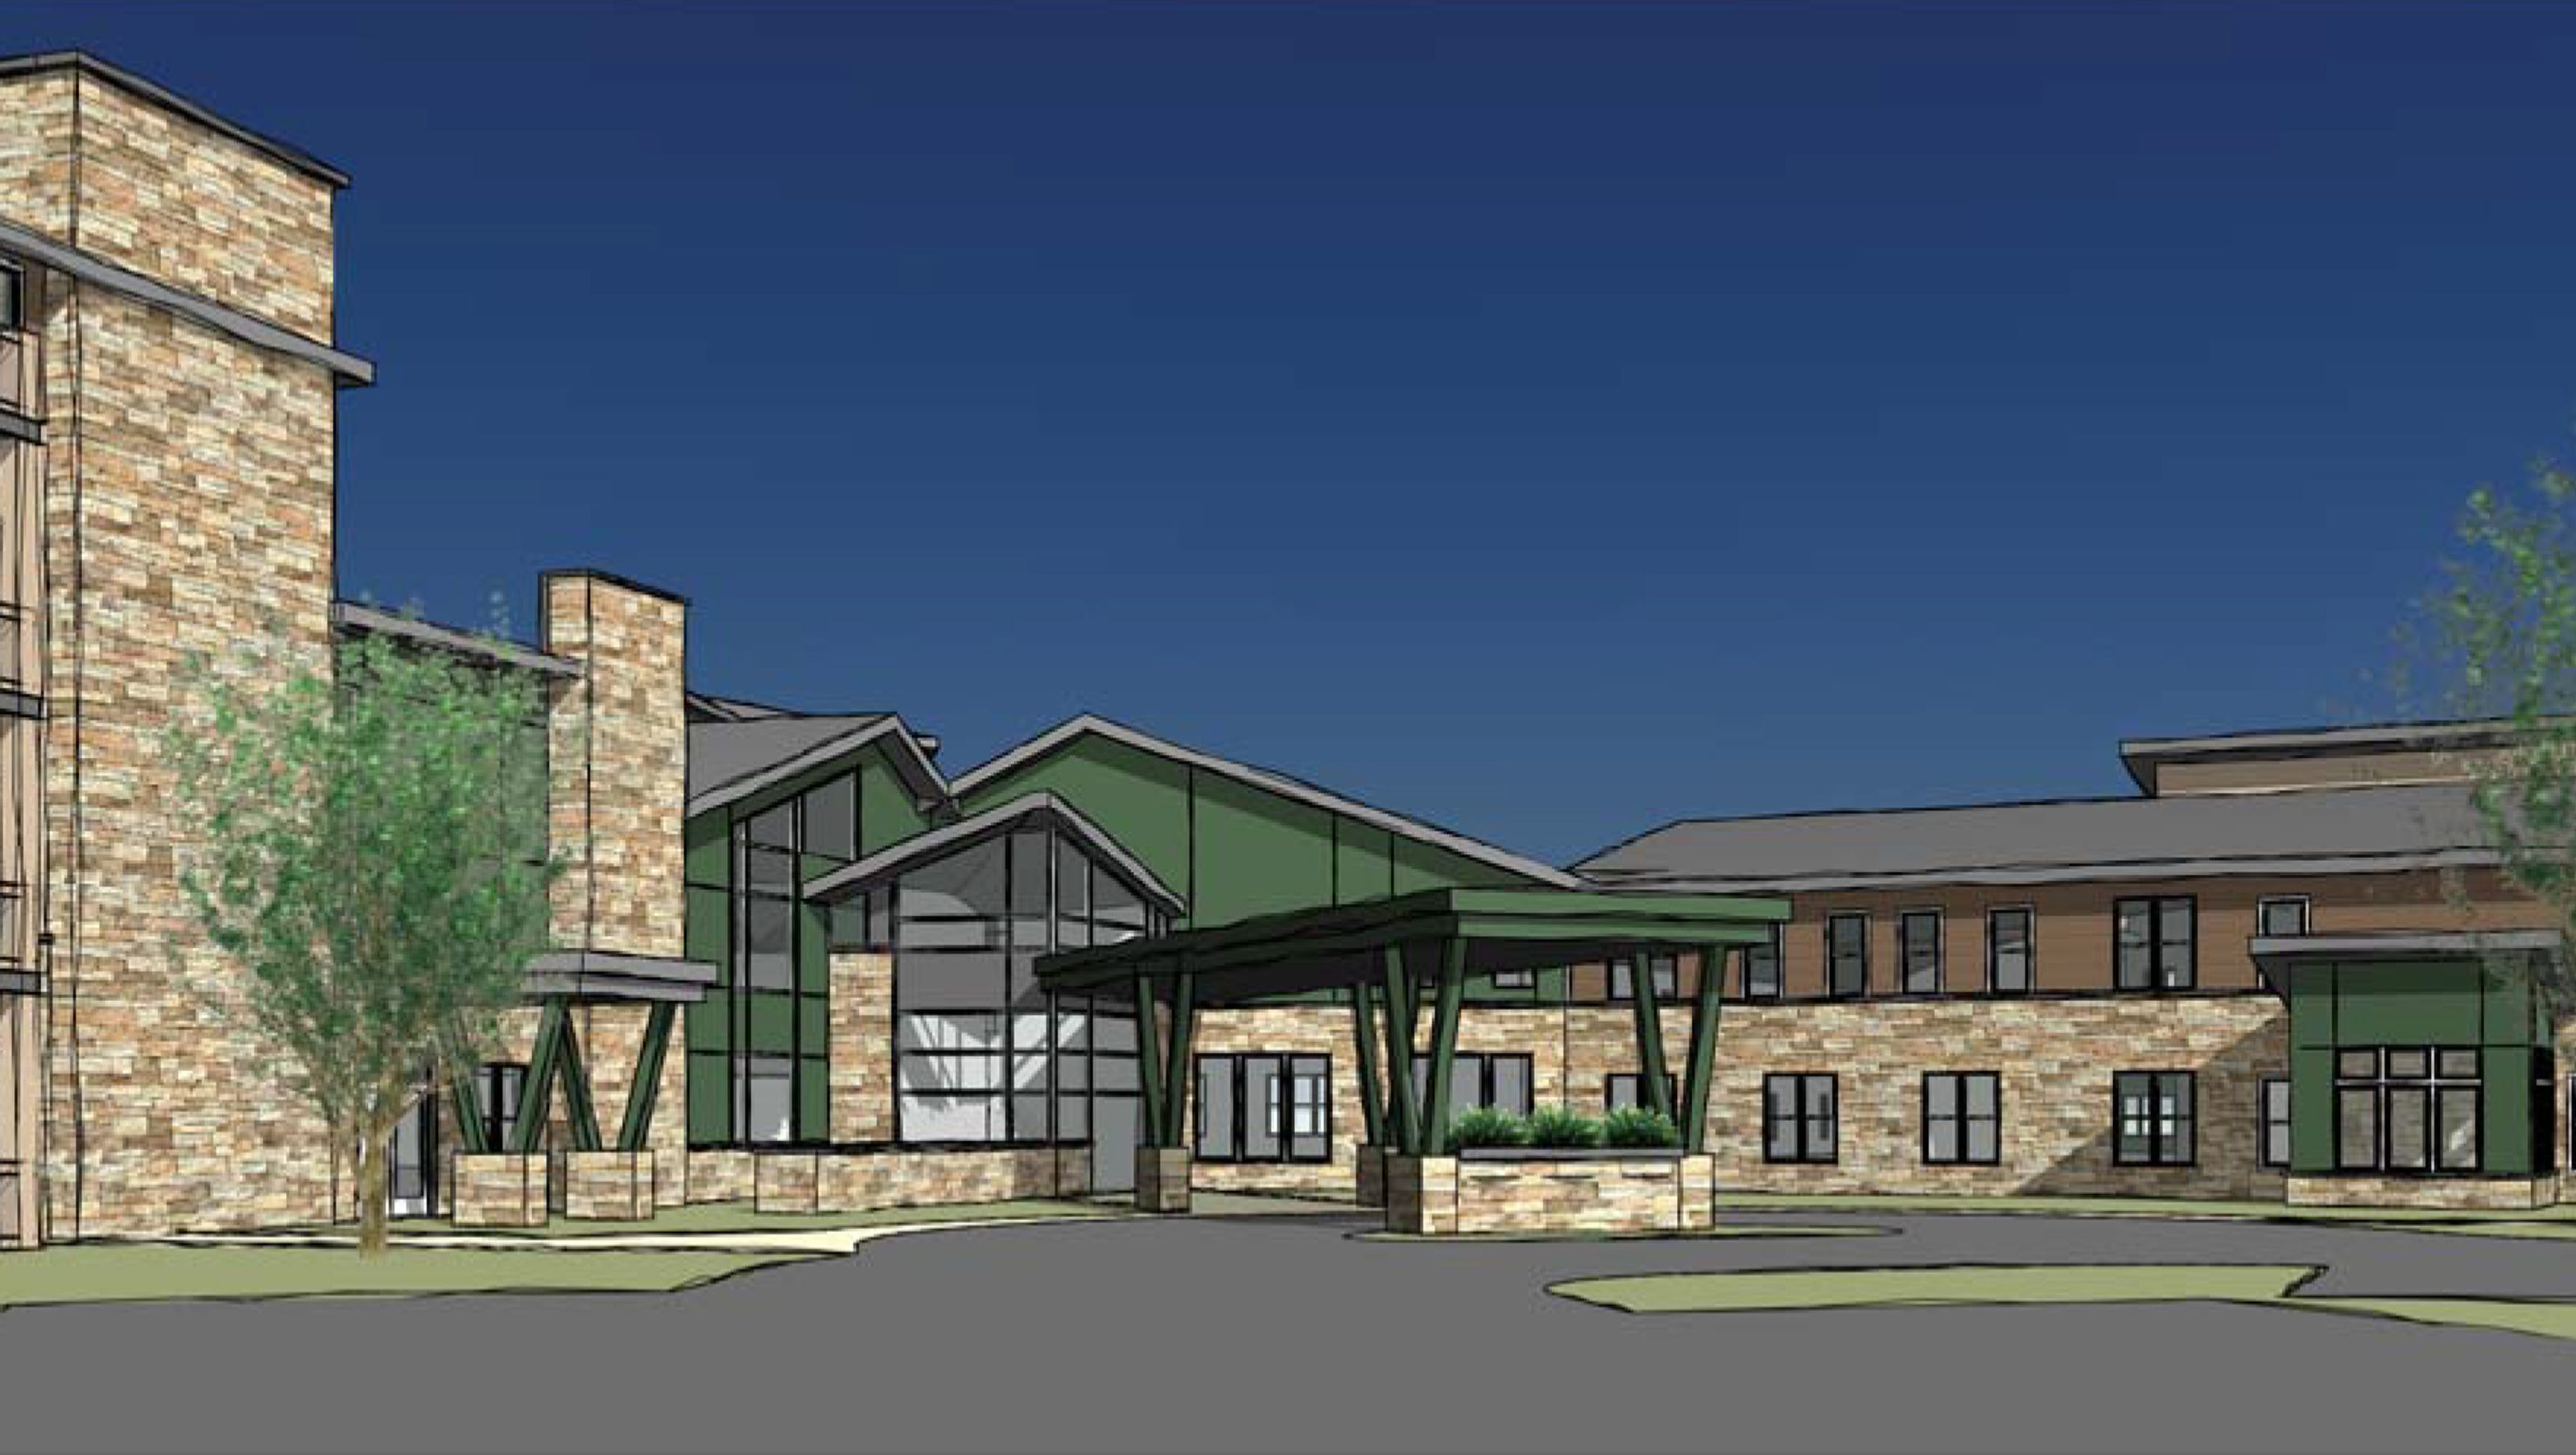 Proposed senior living facility in oconomowoc can move ahead